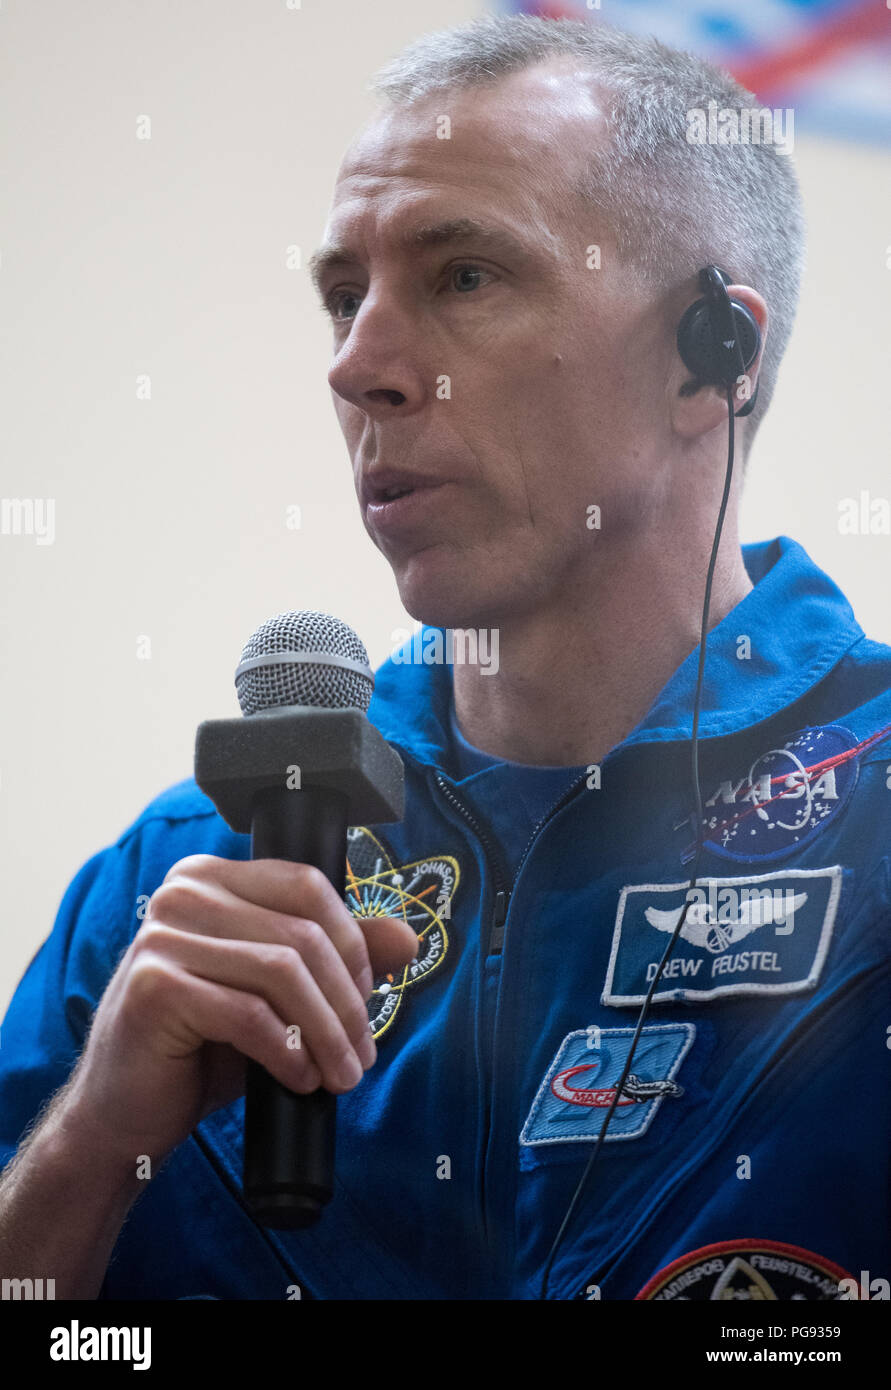 Expedition 55 flight engineer Drew Feustel of NASA answers a question during a press conference, Tuesday, March 20, 2018 at the Cosmonaut Hotel in Baikonur, Kazakhstan. Feustel, Soyuz Commander Oleg Artemyev of Roscosmos, and flight engineer Ricky Arnold of NASA are scheduled to launch to the International Space Station aboard the Soyuz MS-08 spacecraft on Wednesday, March, 21. - Stock Image